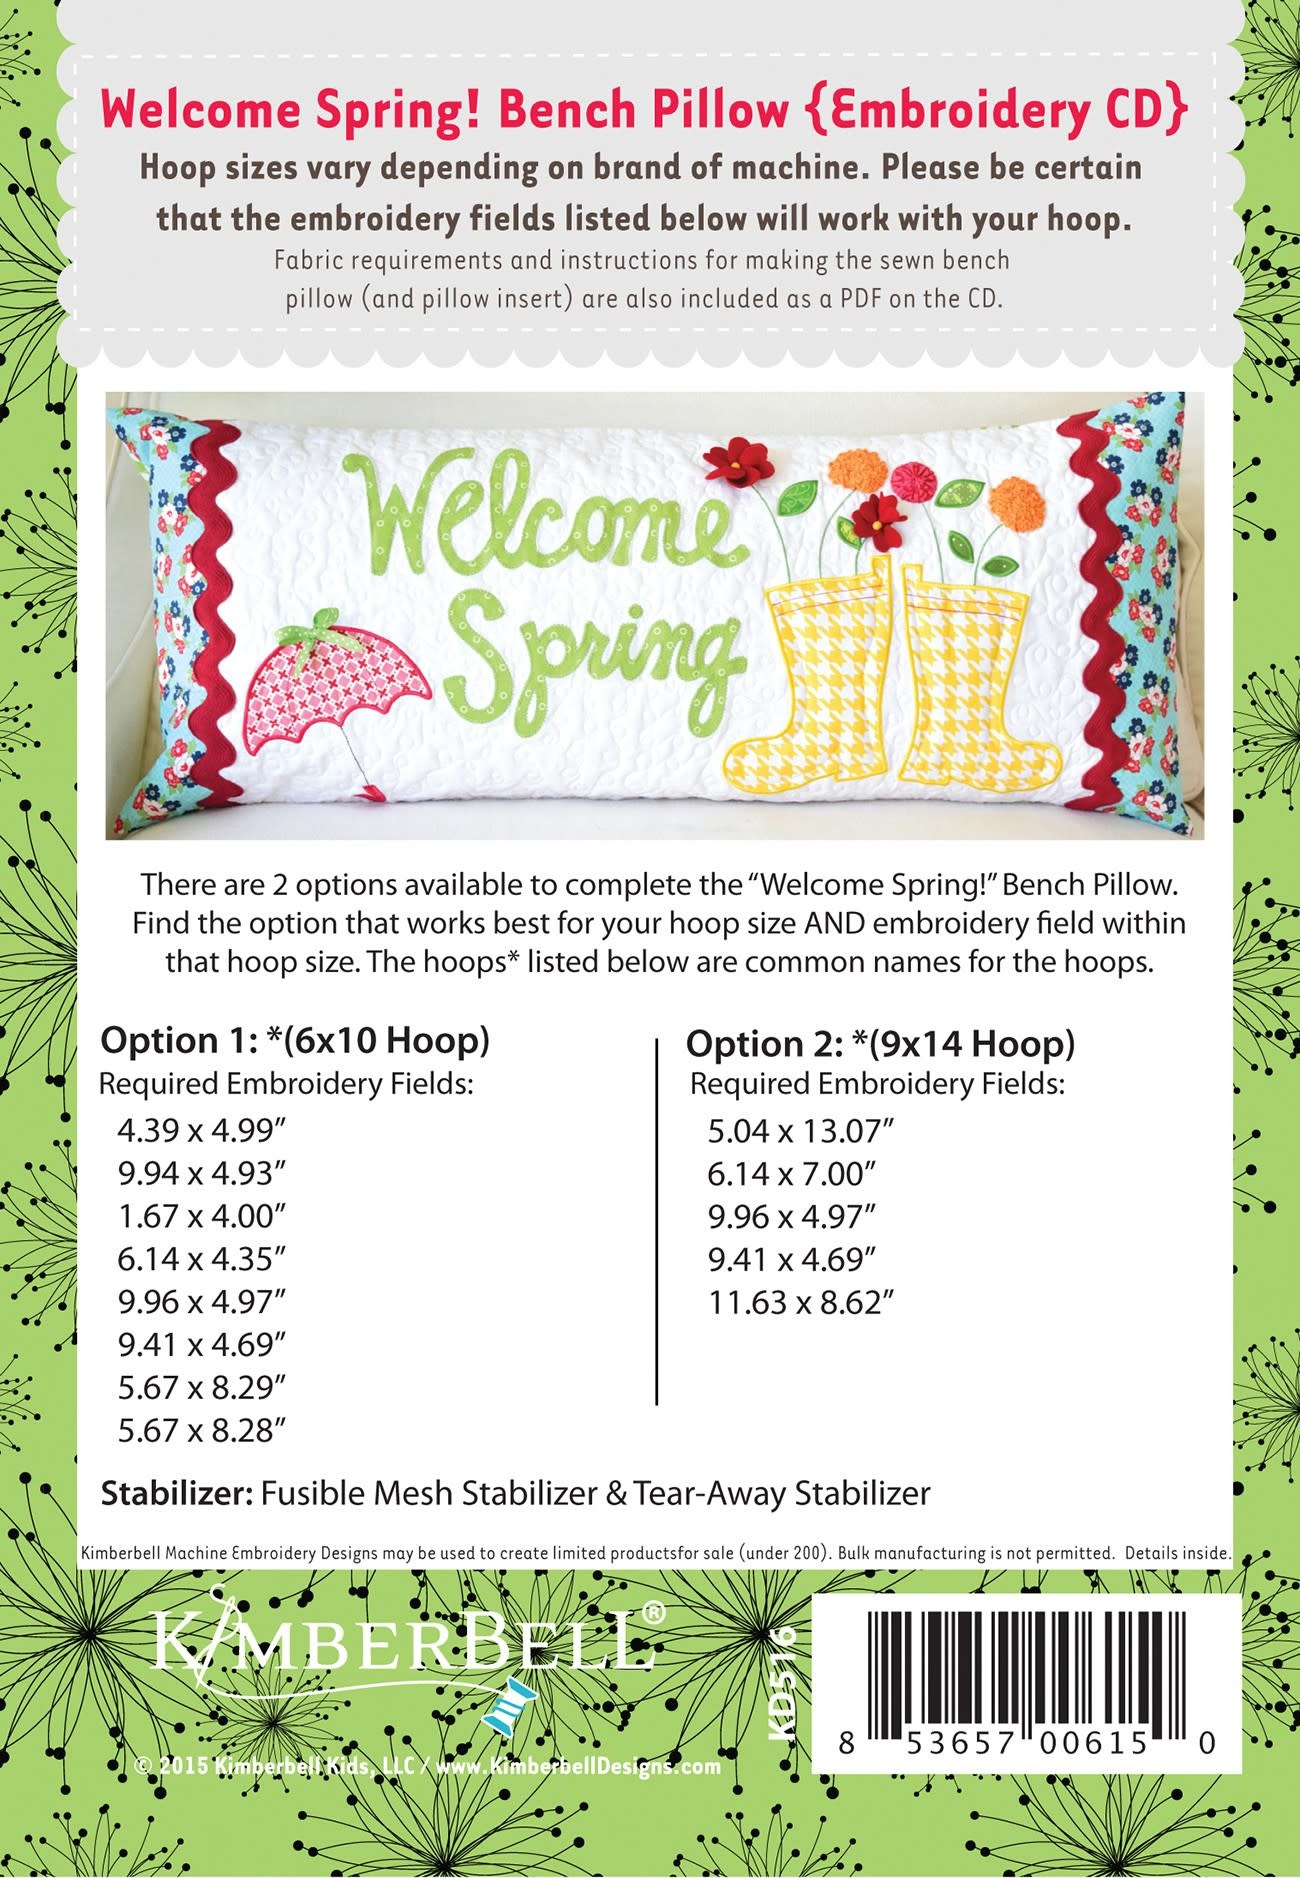 KIMBERBELL DESIGNS Welcome Spring Bench Pillow Embroidery Designs CD